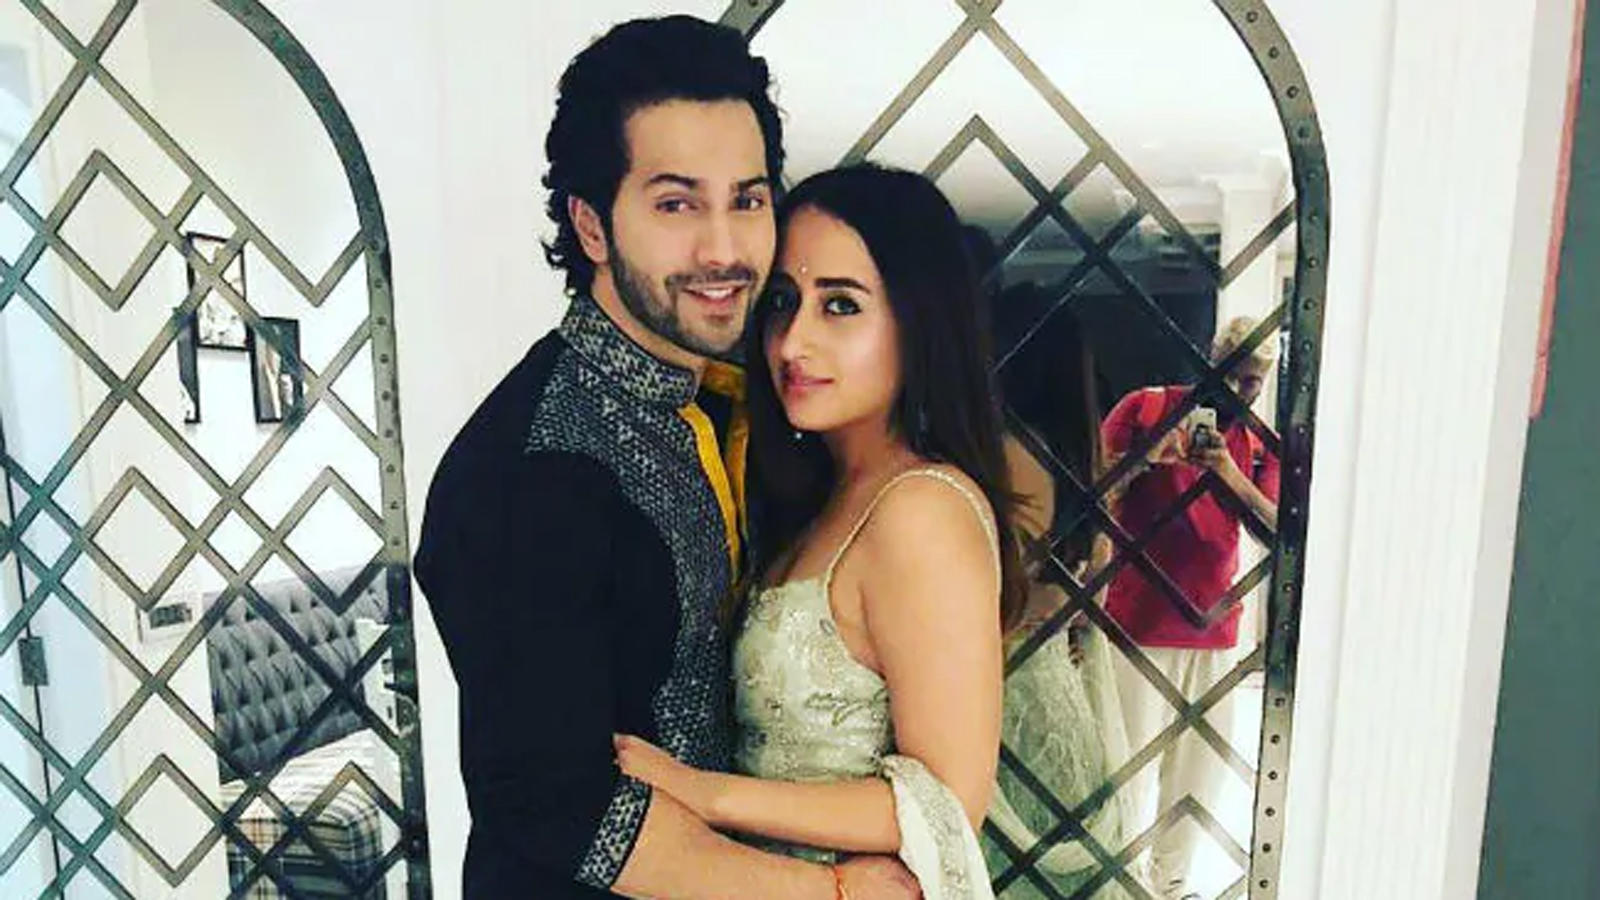 Varun Dhawan says marriage isn't on the cards anytime soon